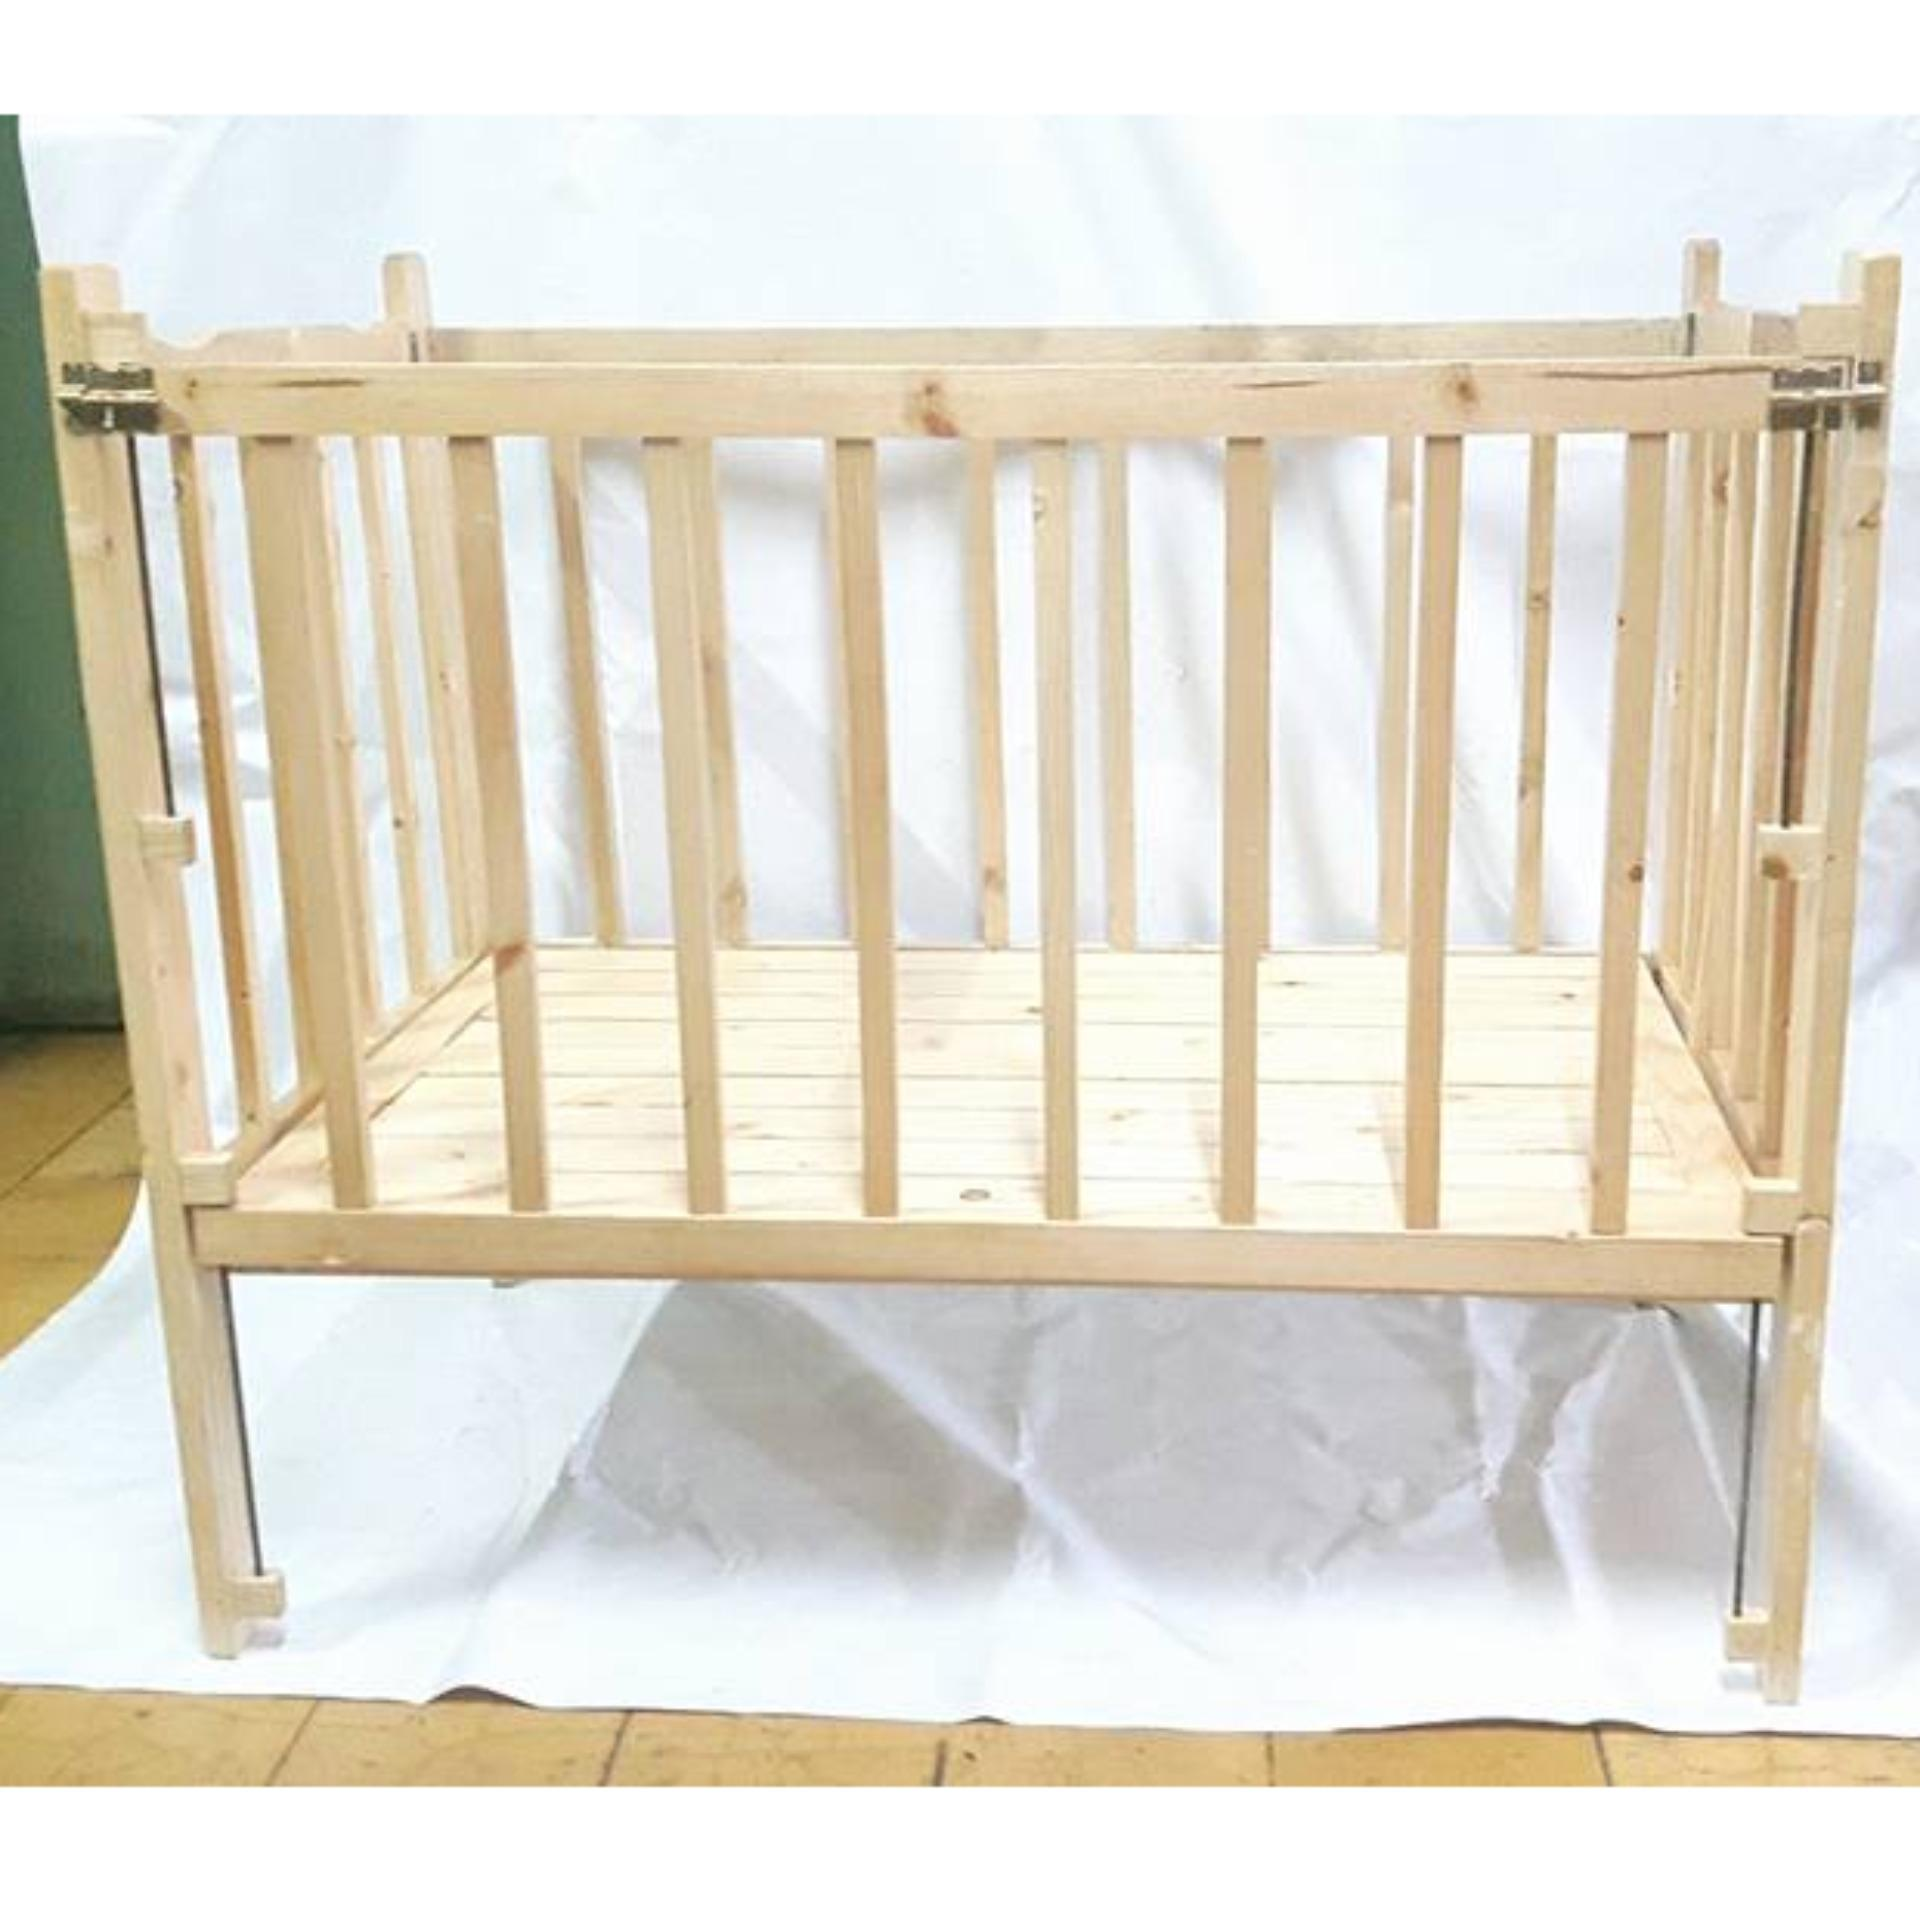 Wooden crib for sale cavite - Wooden Crib For Sale Cavite 3